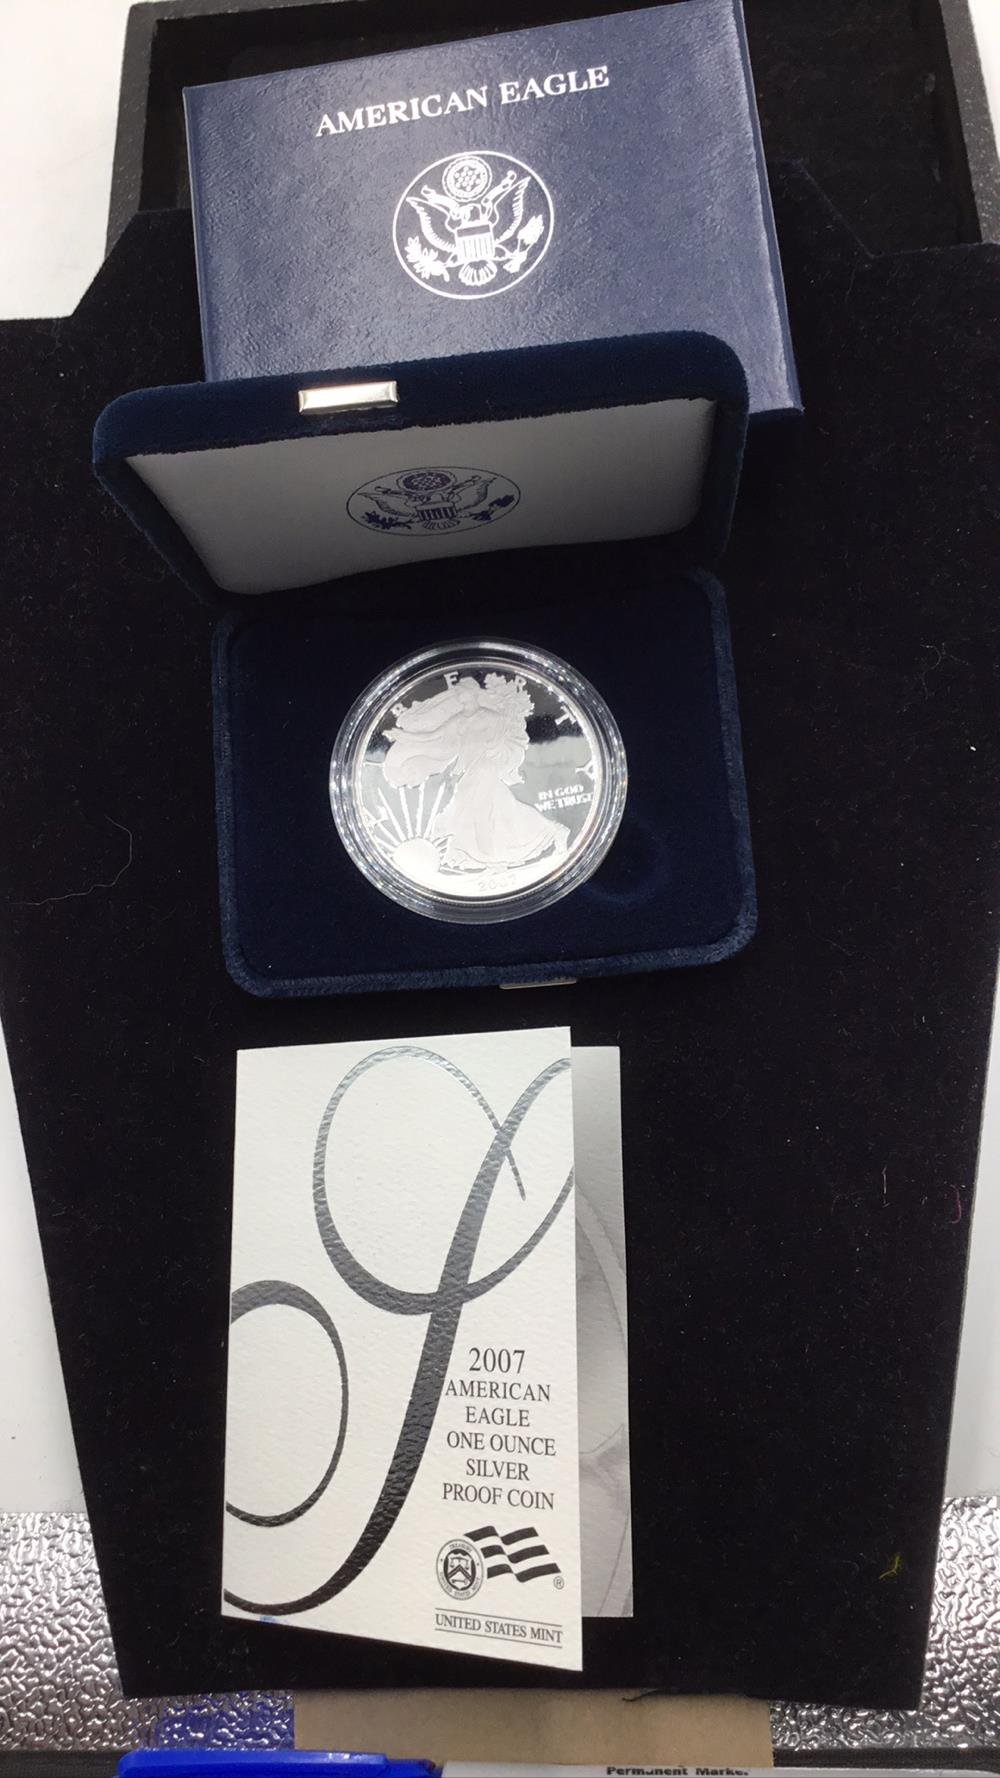 American eagle 1 ounce silver proof Dollar